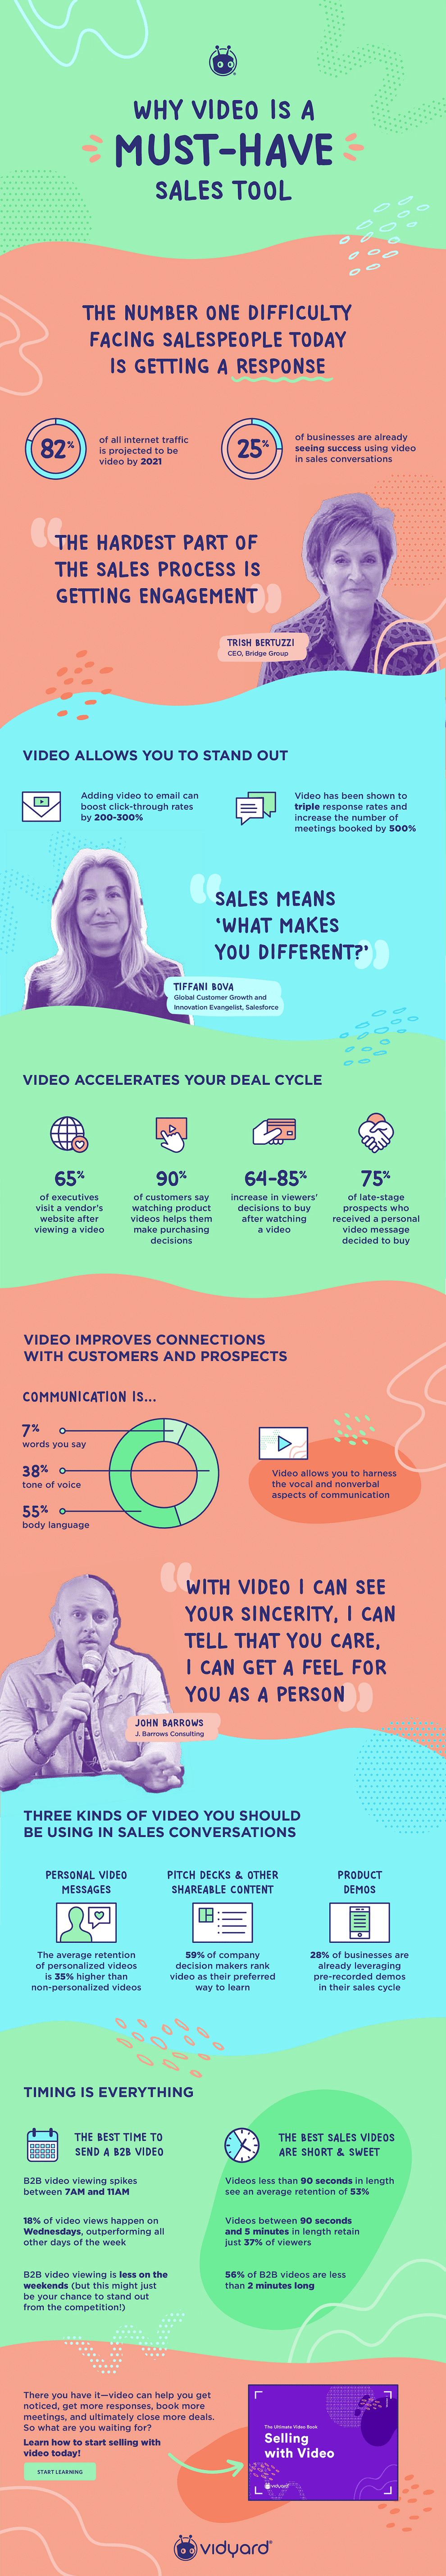 Infographic outlines a range of stats on the effectiveness of video marketing